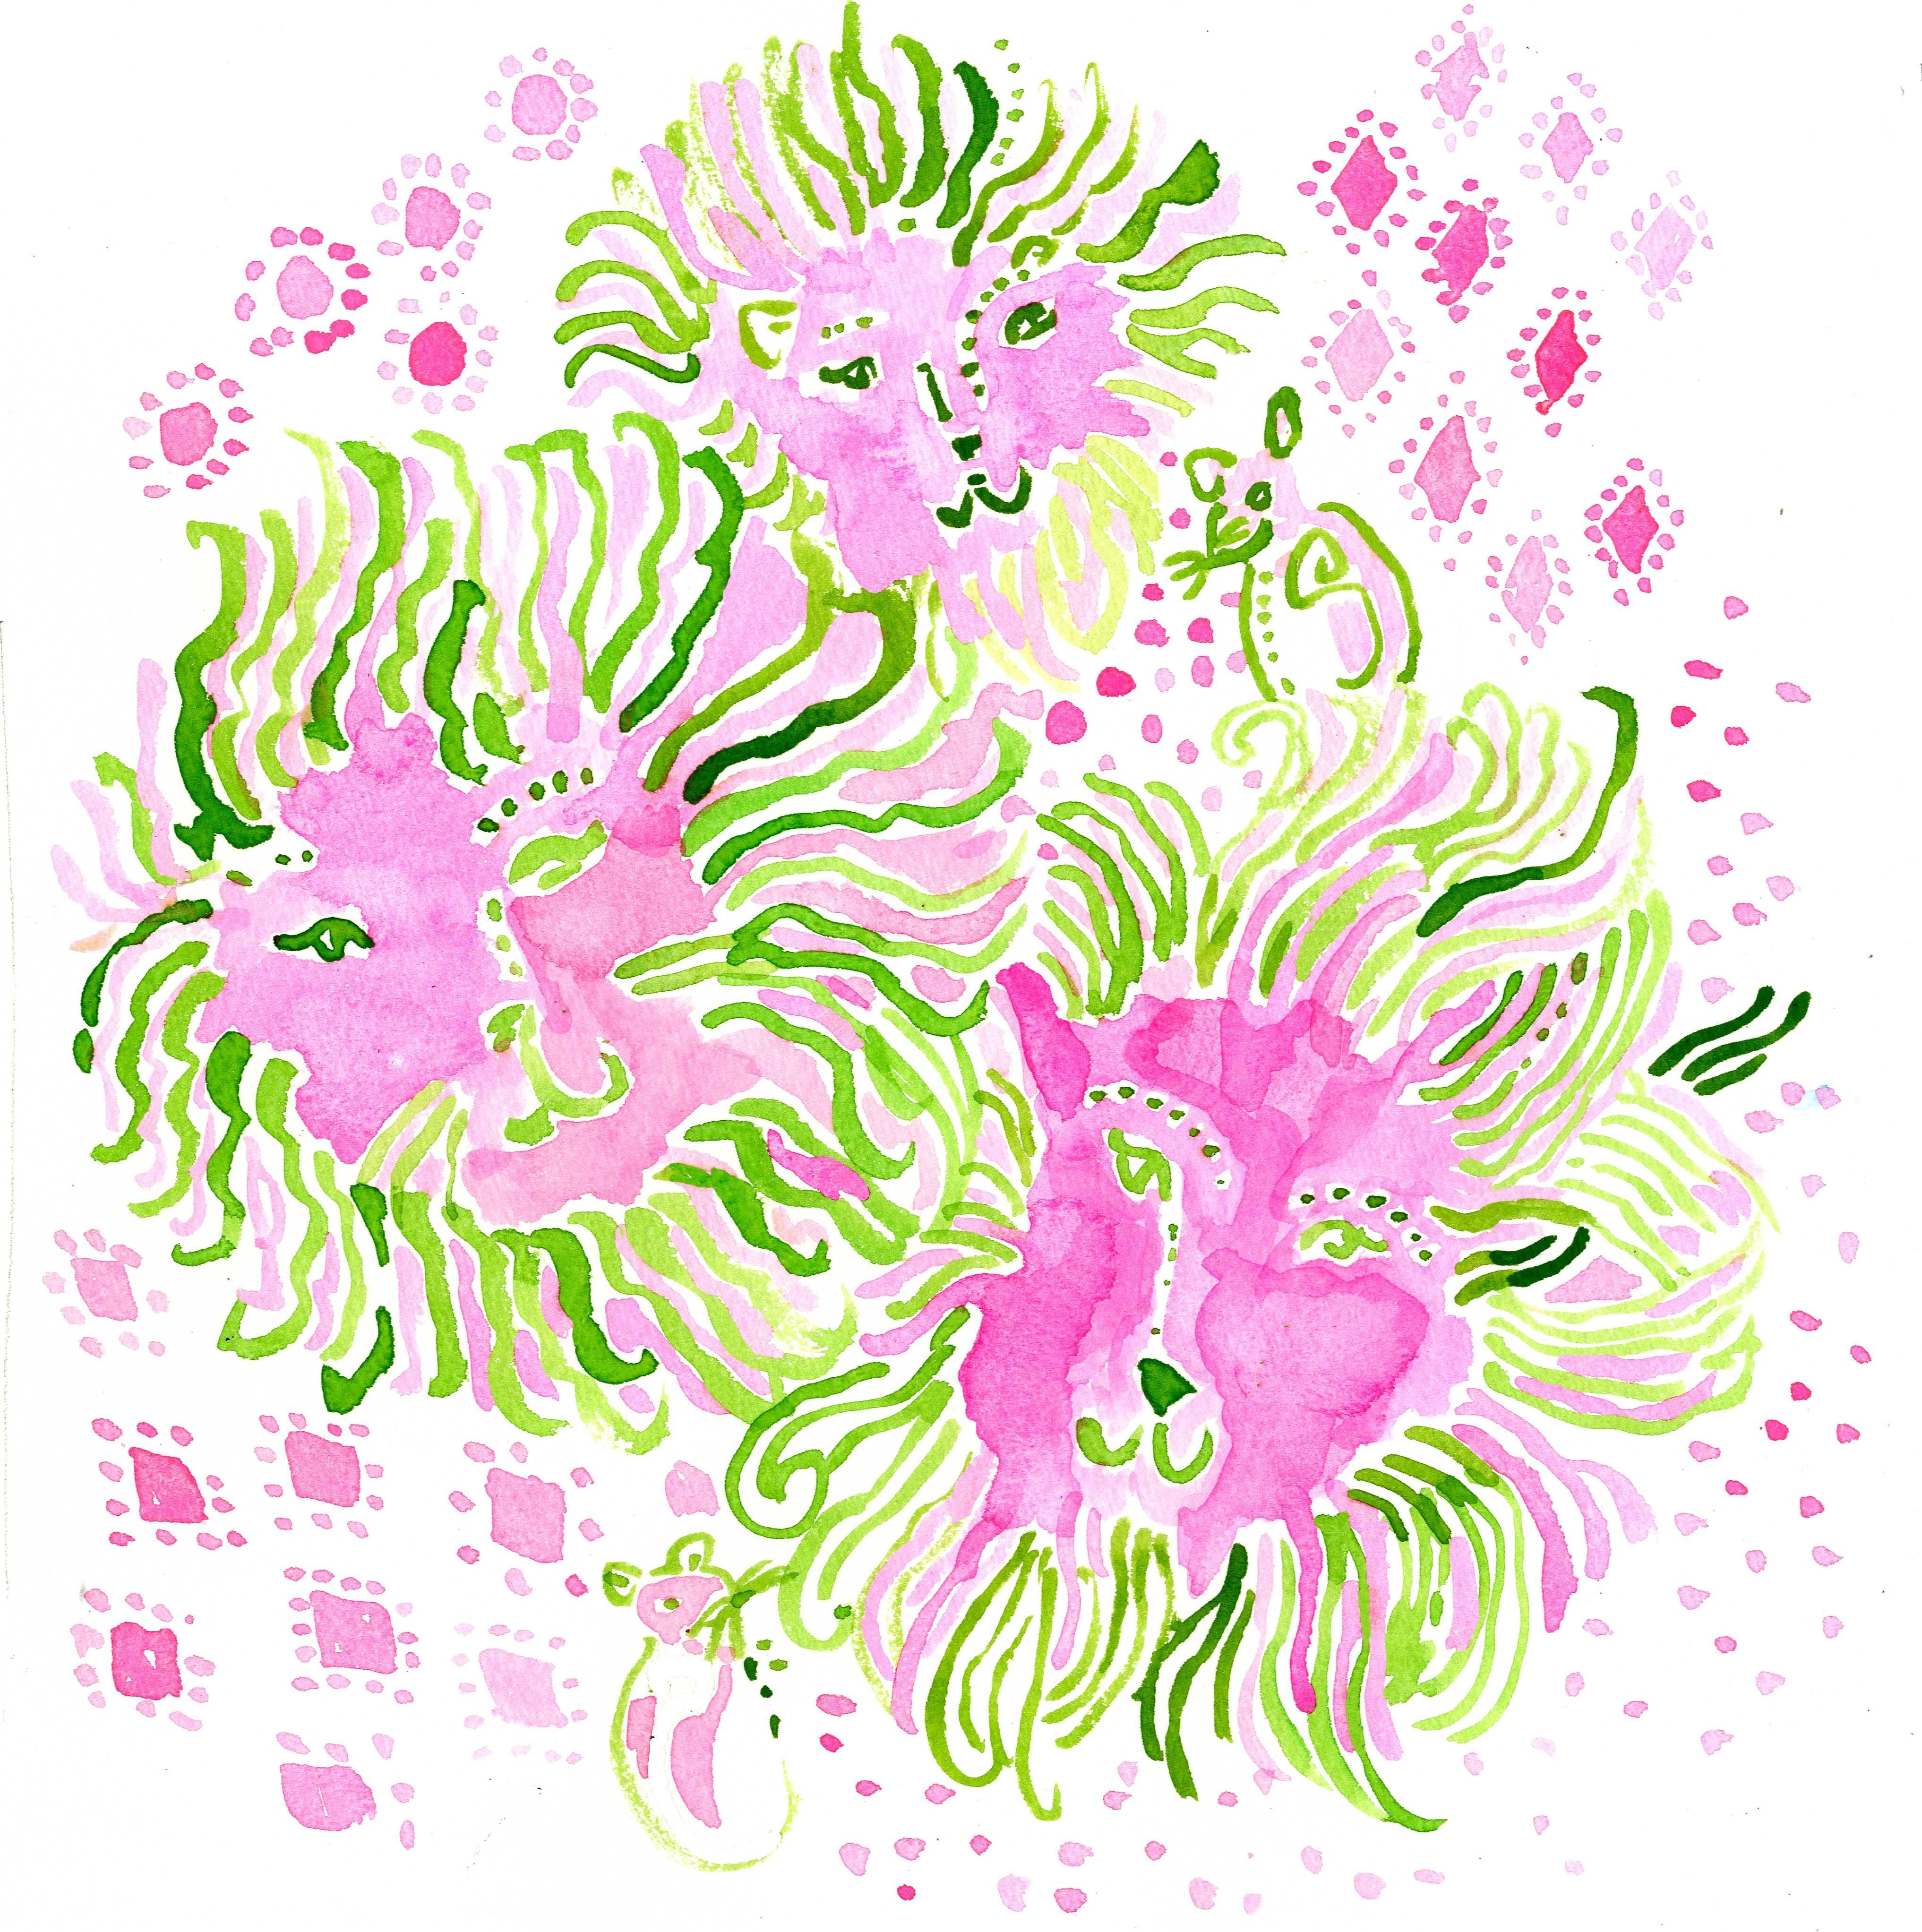 Lilly Pulitzer Spring 2014 Collection | Lily 5x5"|4068|4089|?|en|2|f7ef7f8c9712bdd35f667745377a2939|False|UNLIKELY|0.3016153573989868